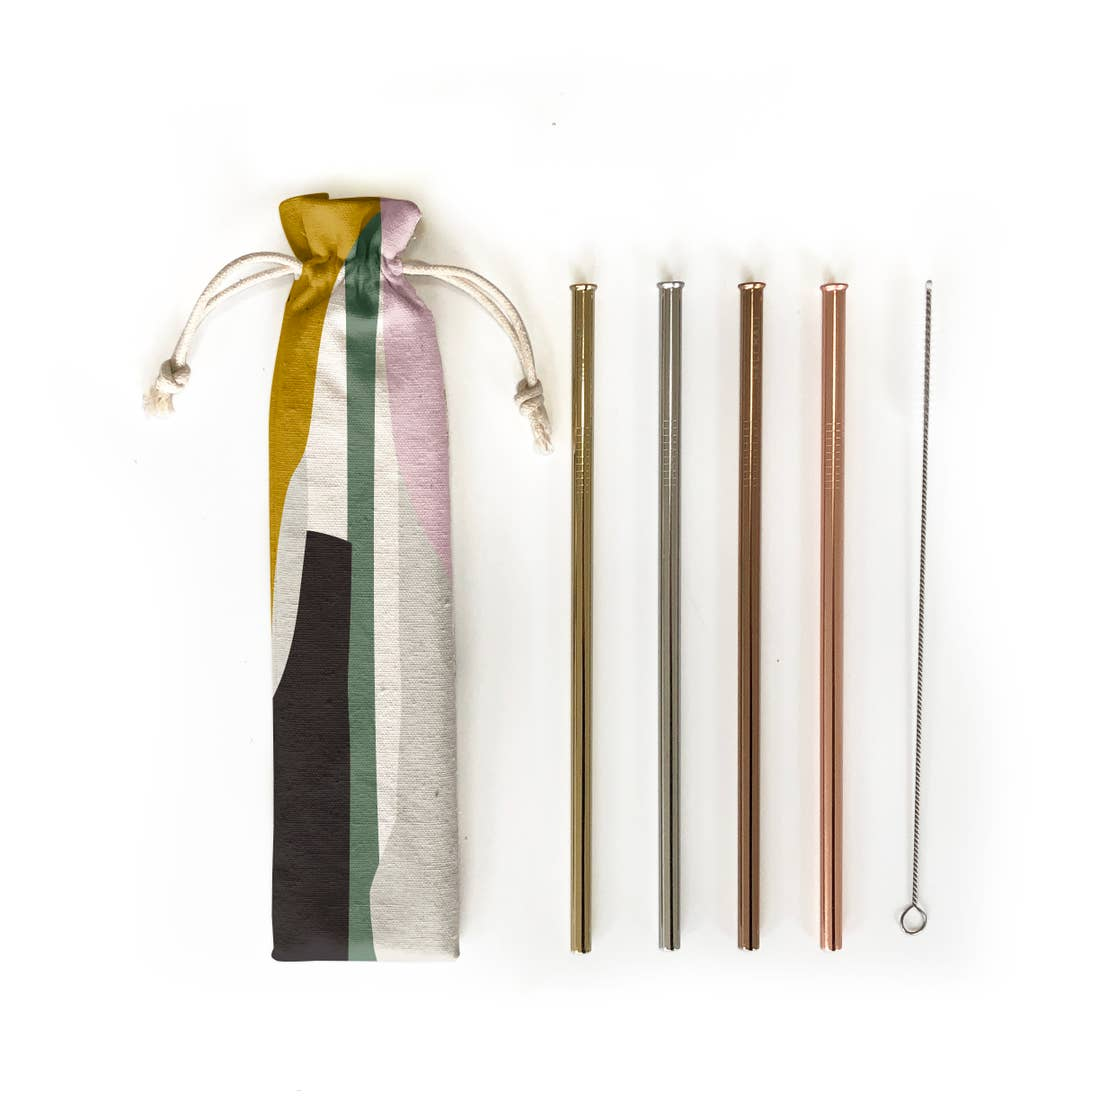 Hali Hali: 6 pc Eco Friendly Reusable Straw Set- Blocks